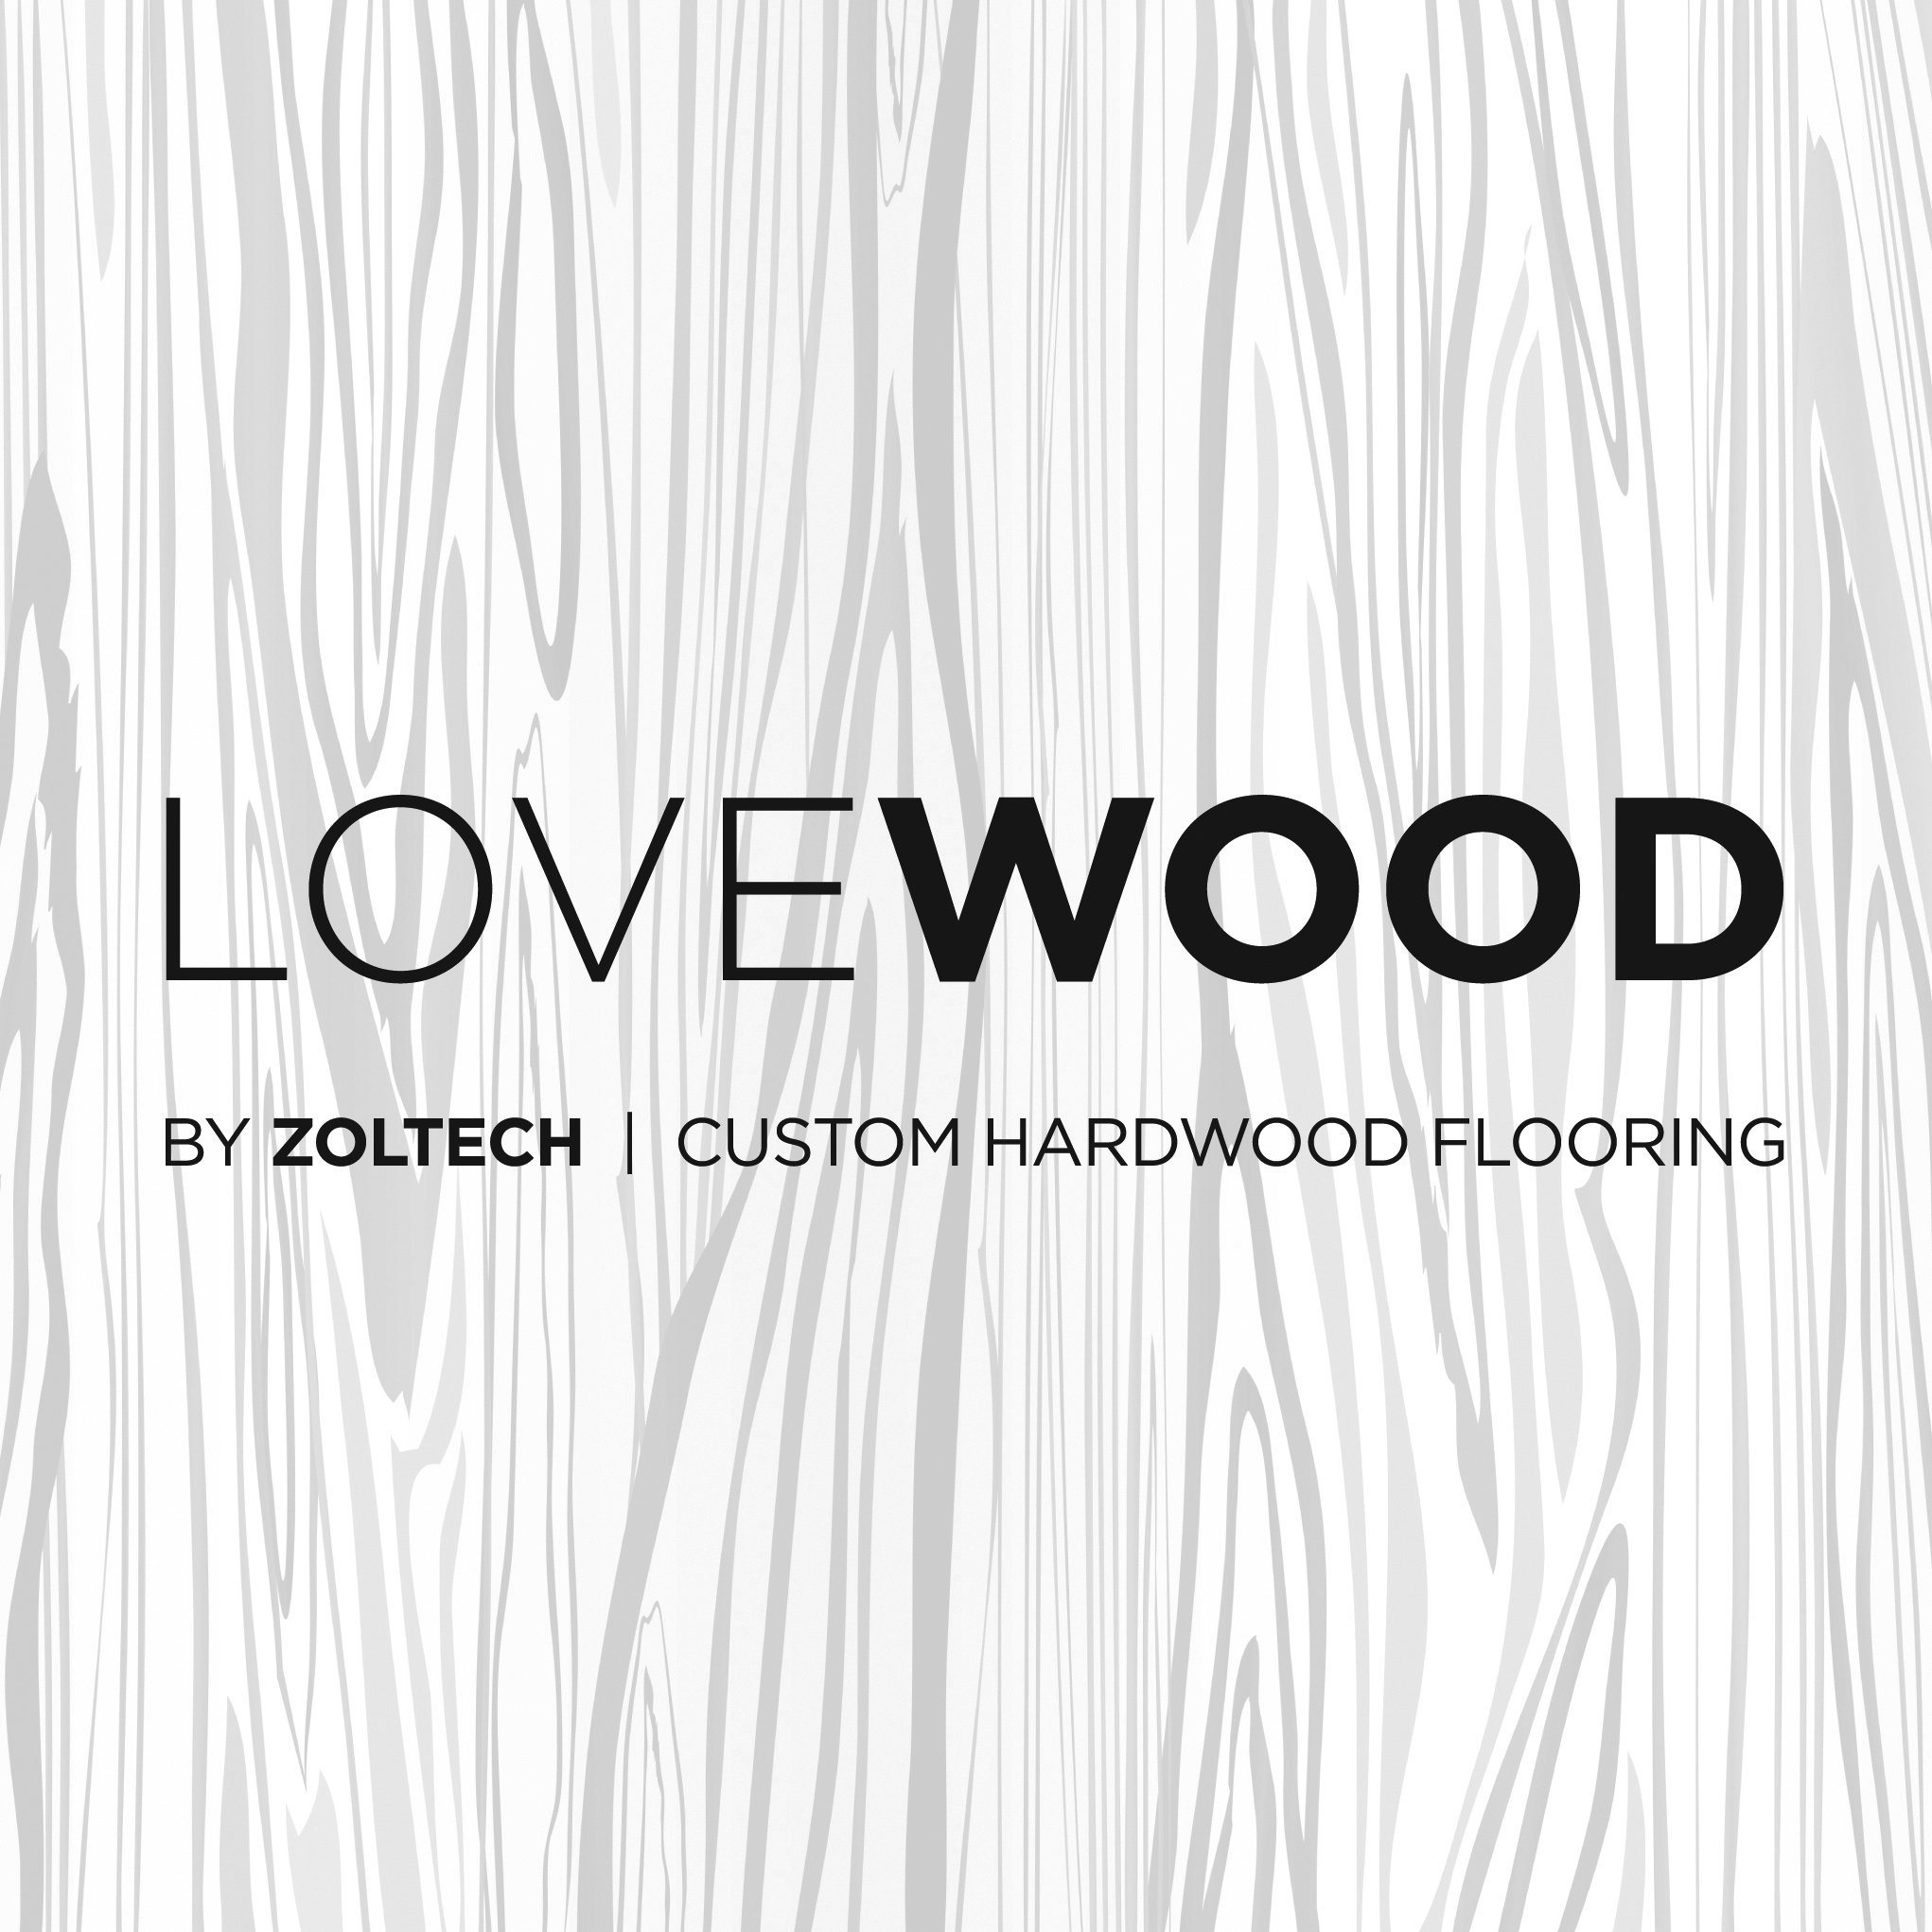 lovewood_logo-horizontal_LIGHT-CMYK